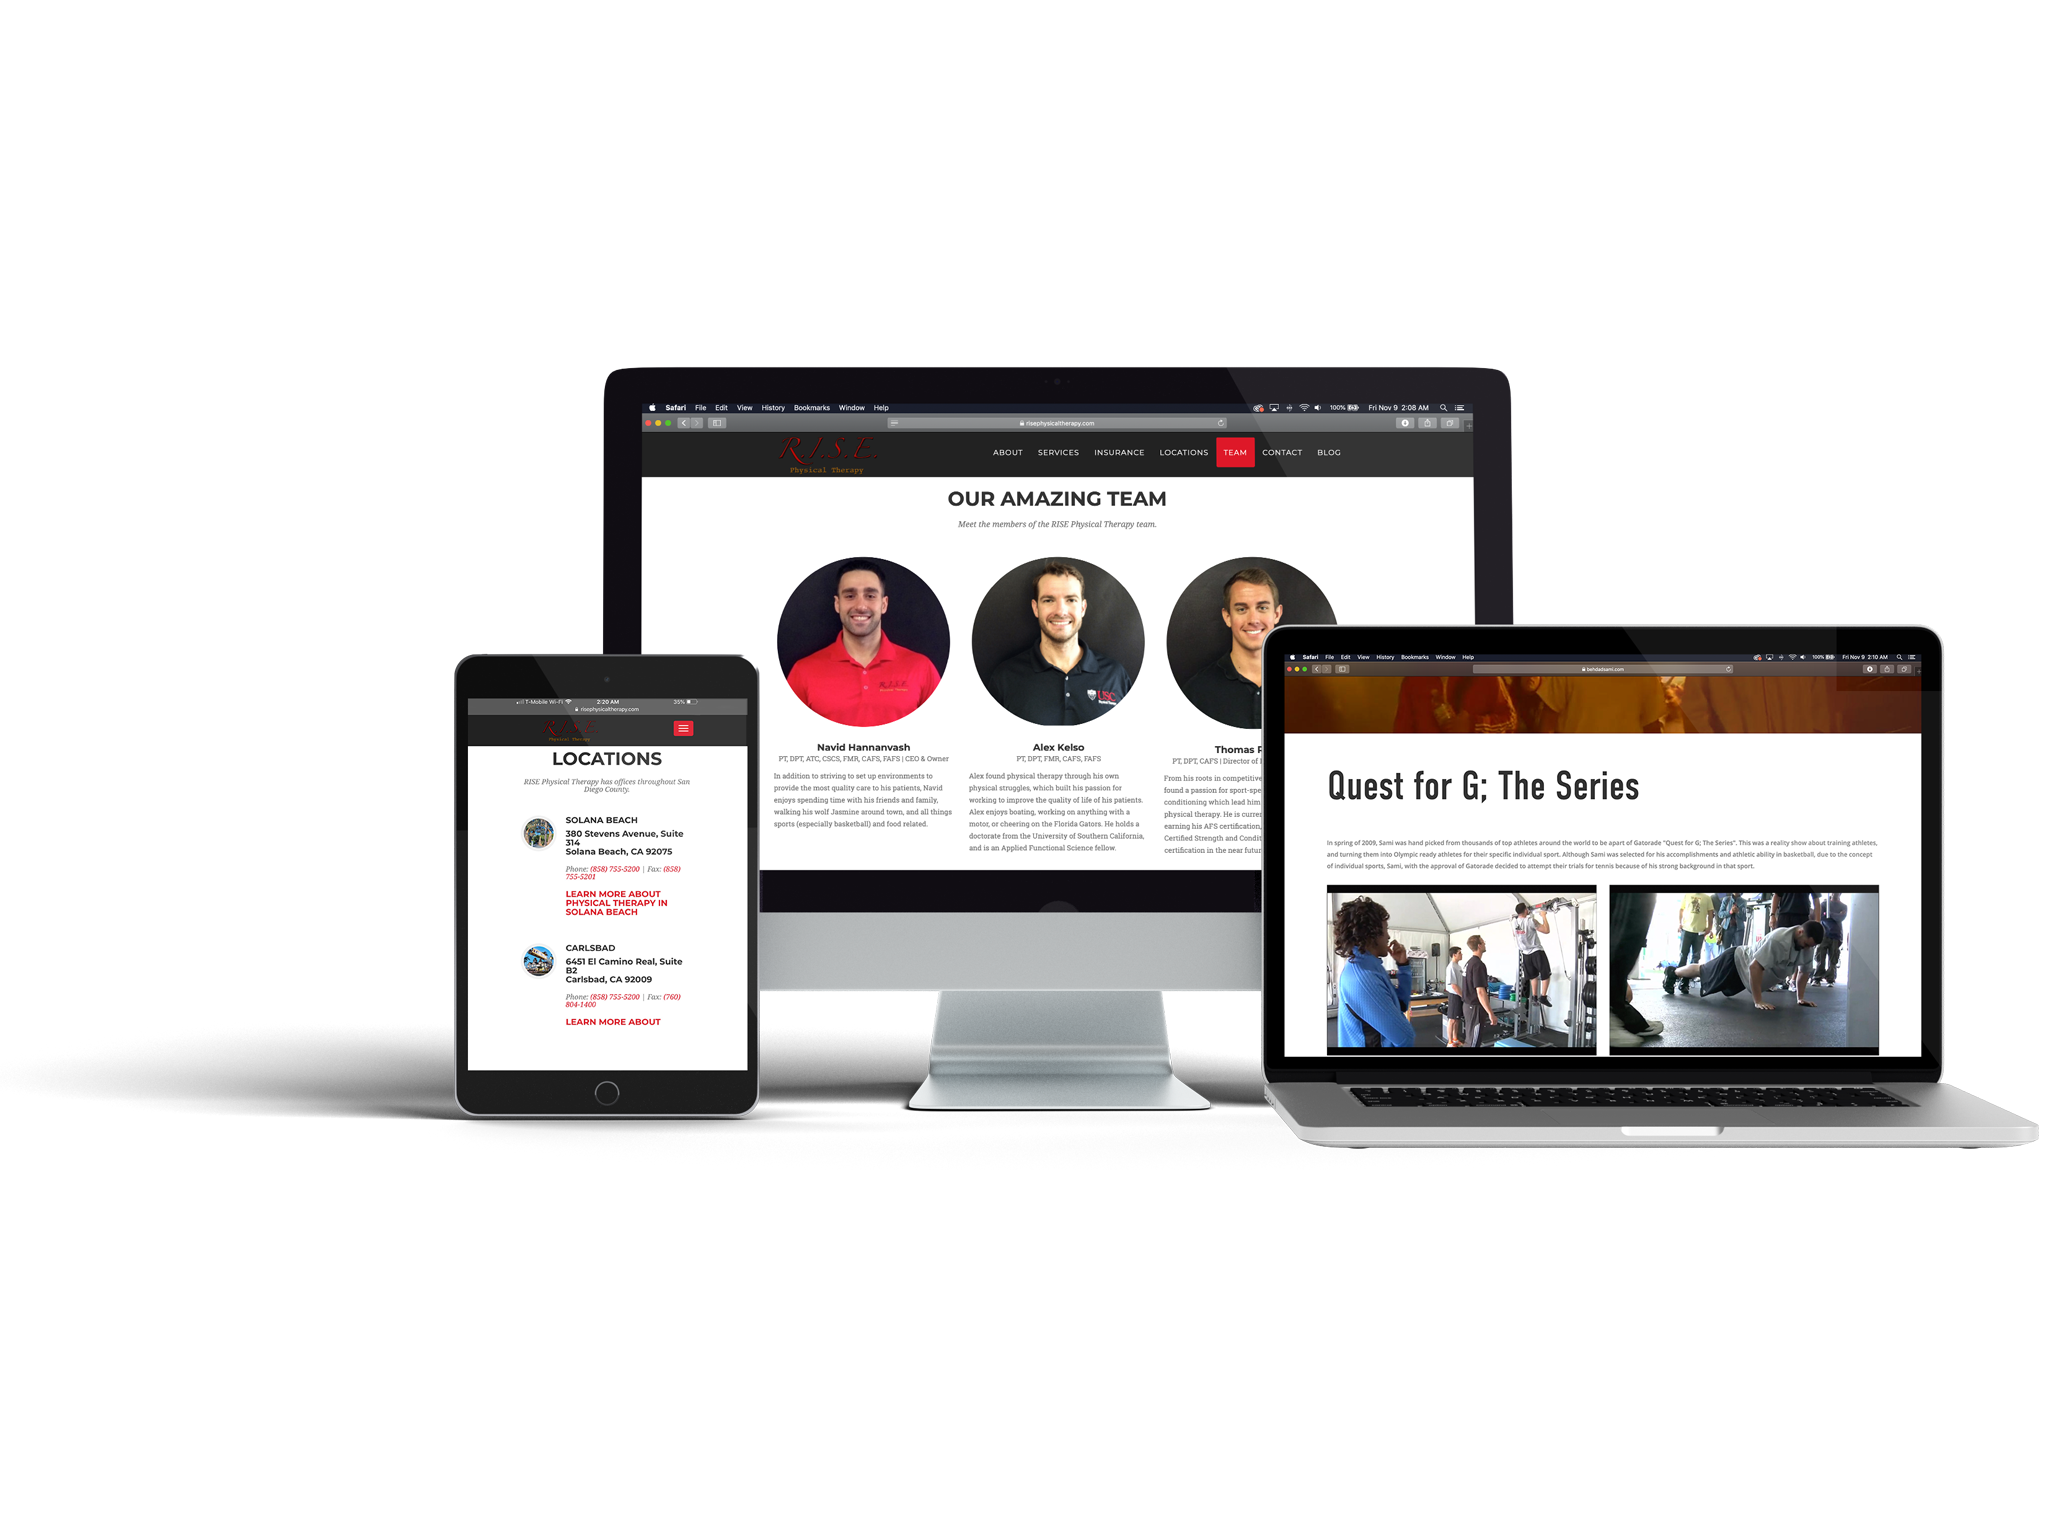 Websites - It's imperative for a website to really connect with each visitor, while still being custom-tailored to each client.